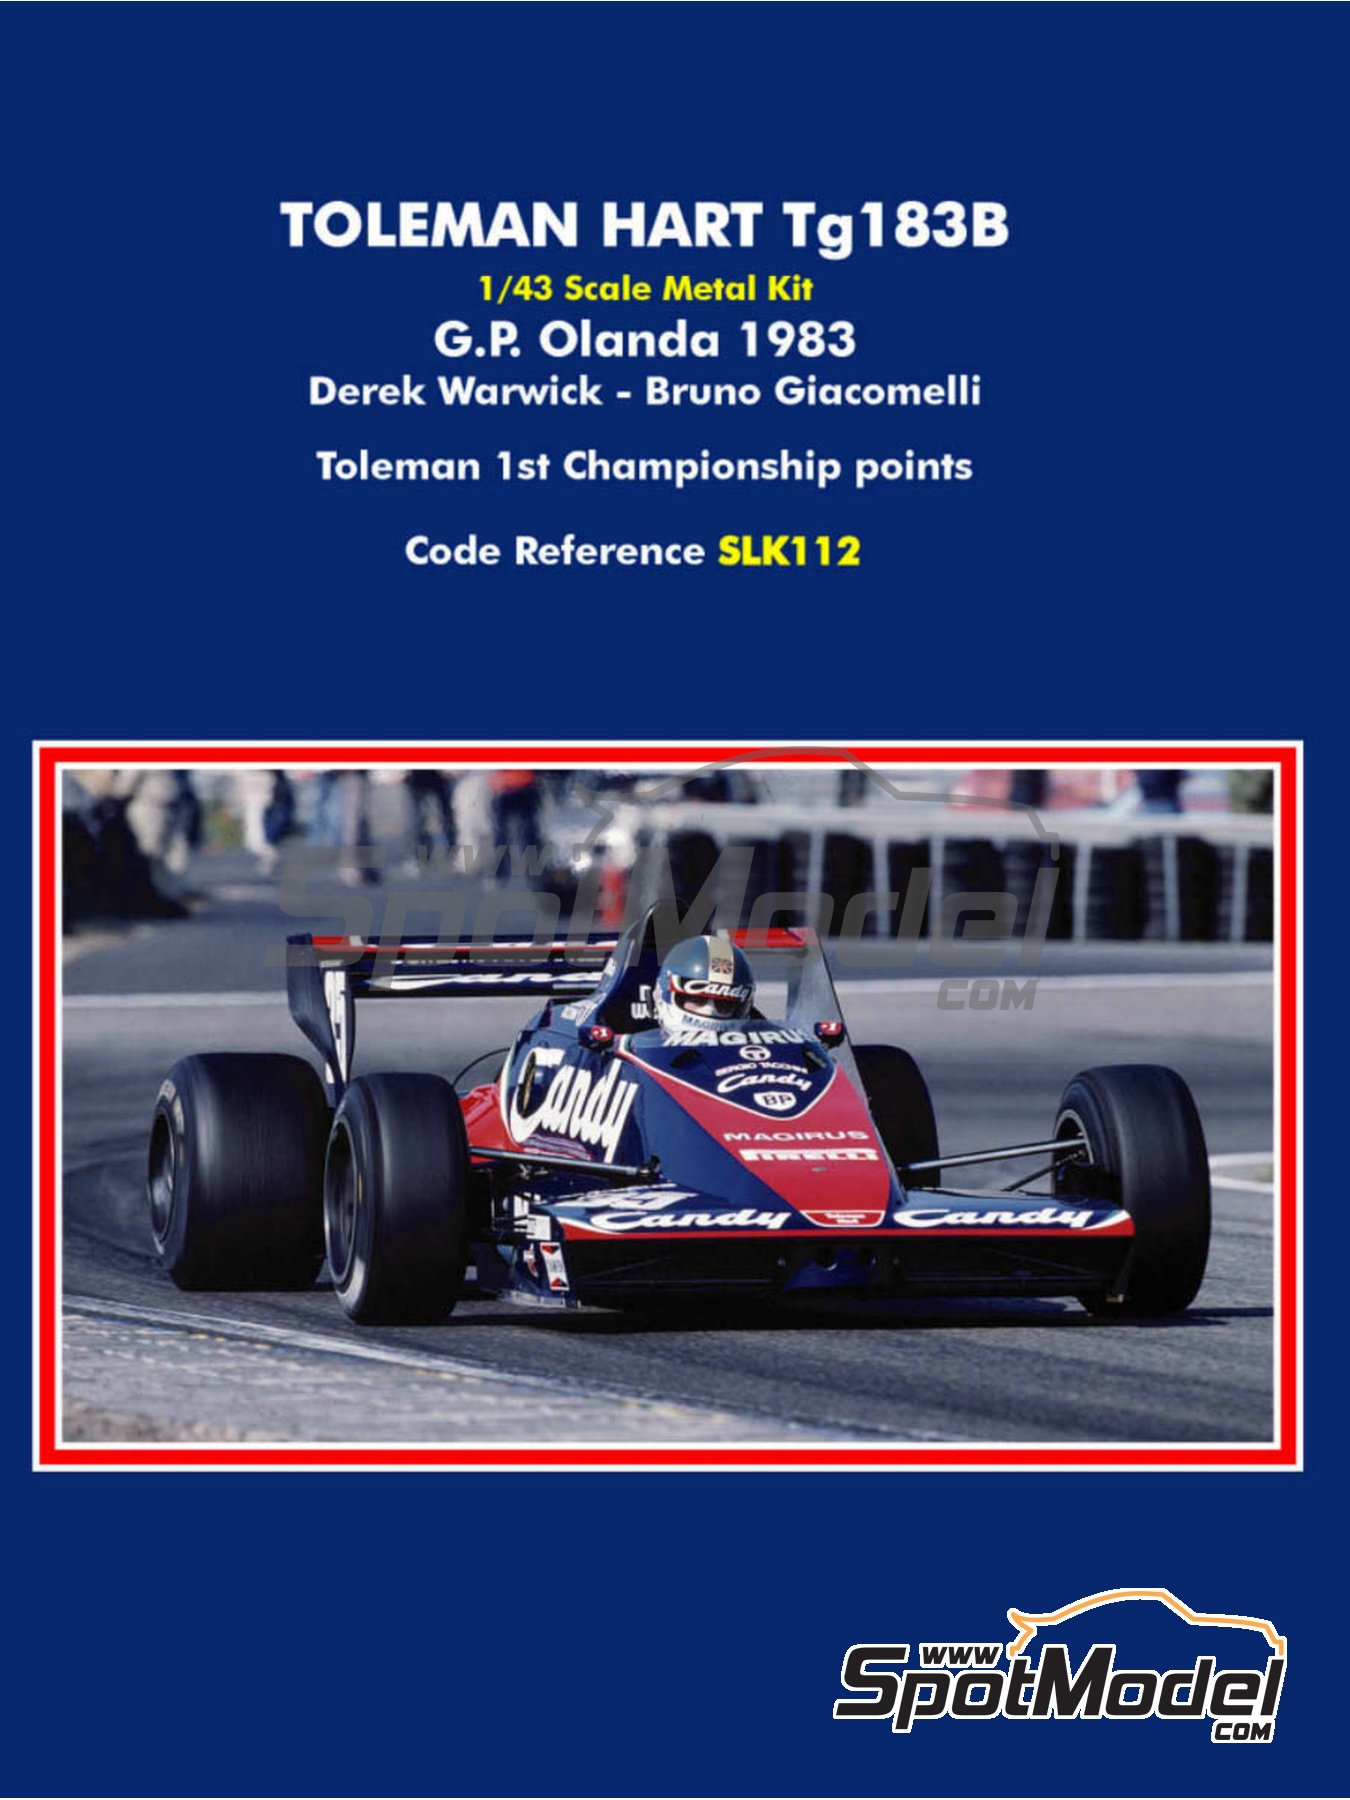 Toleman Hart TG183B Candy Magirus - Dutch Grand Prix 1983 | Model car kit in 1/43 scale manufactured by Tameo Kits (ref. SLK112) image